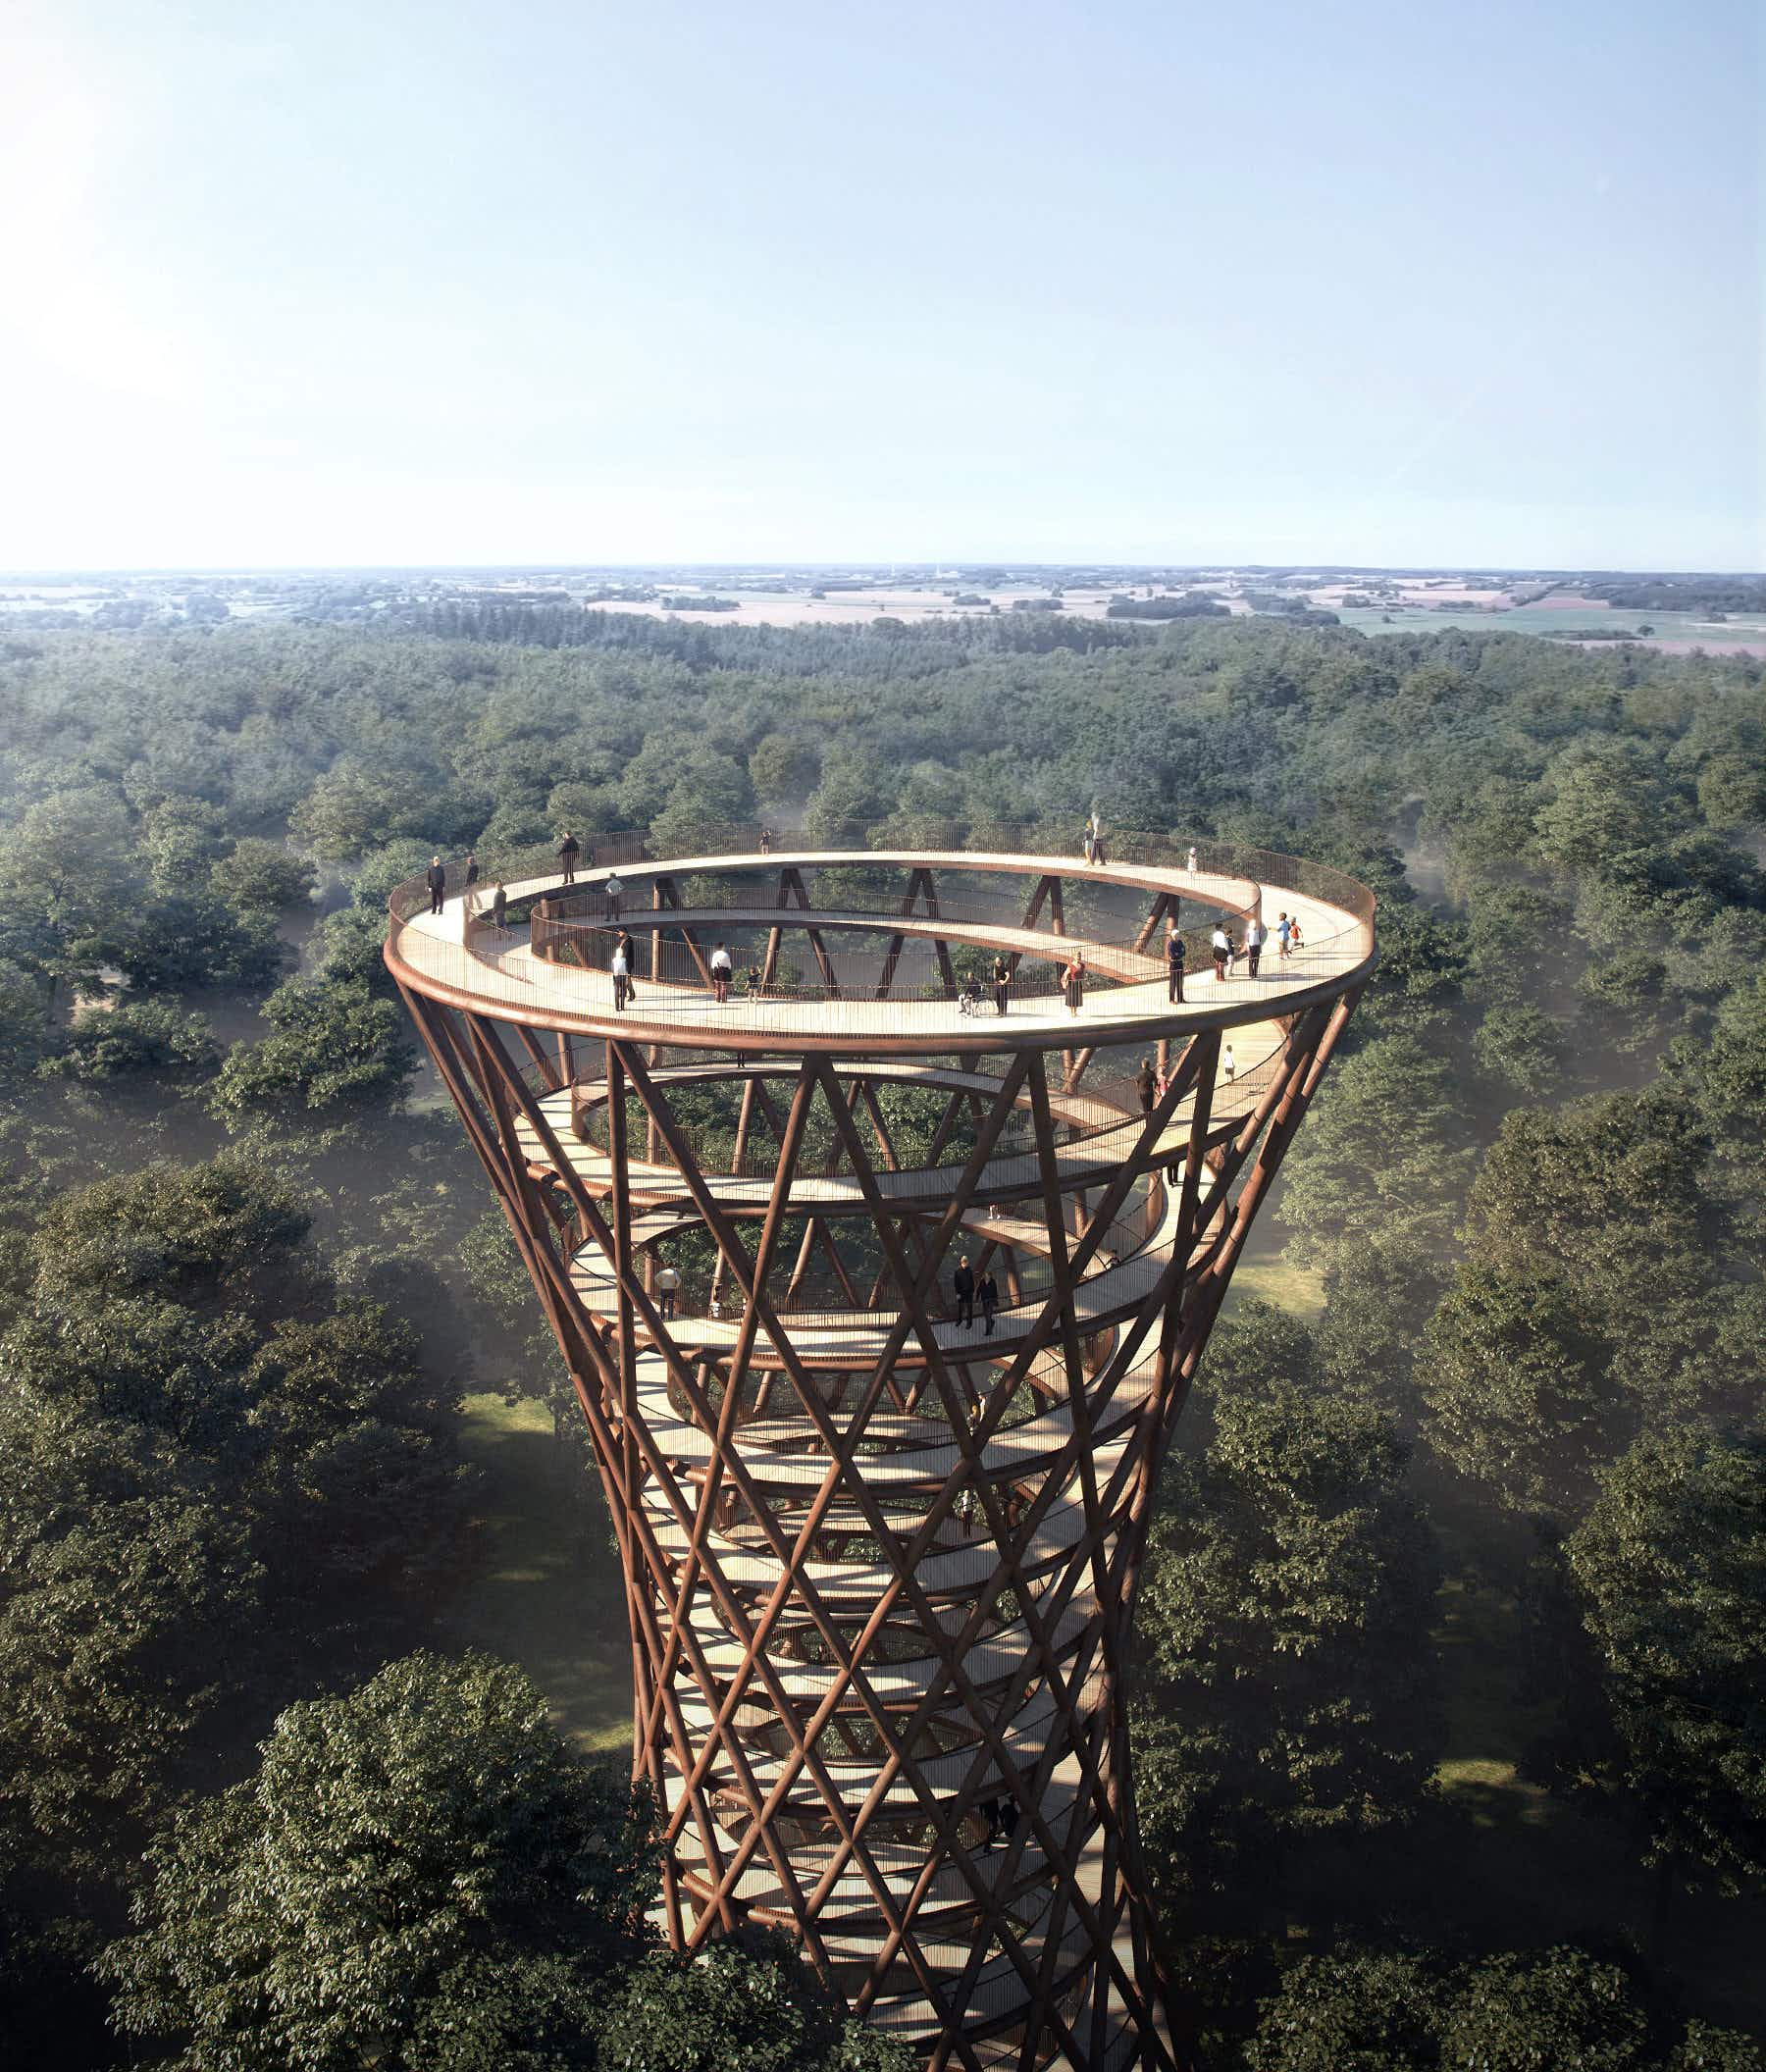 Walk above the trees in Denmark as plans unveiled for an incredible spiral treetop walkway